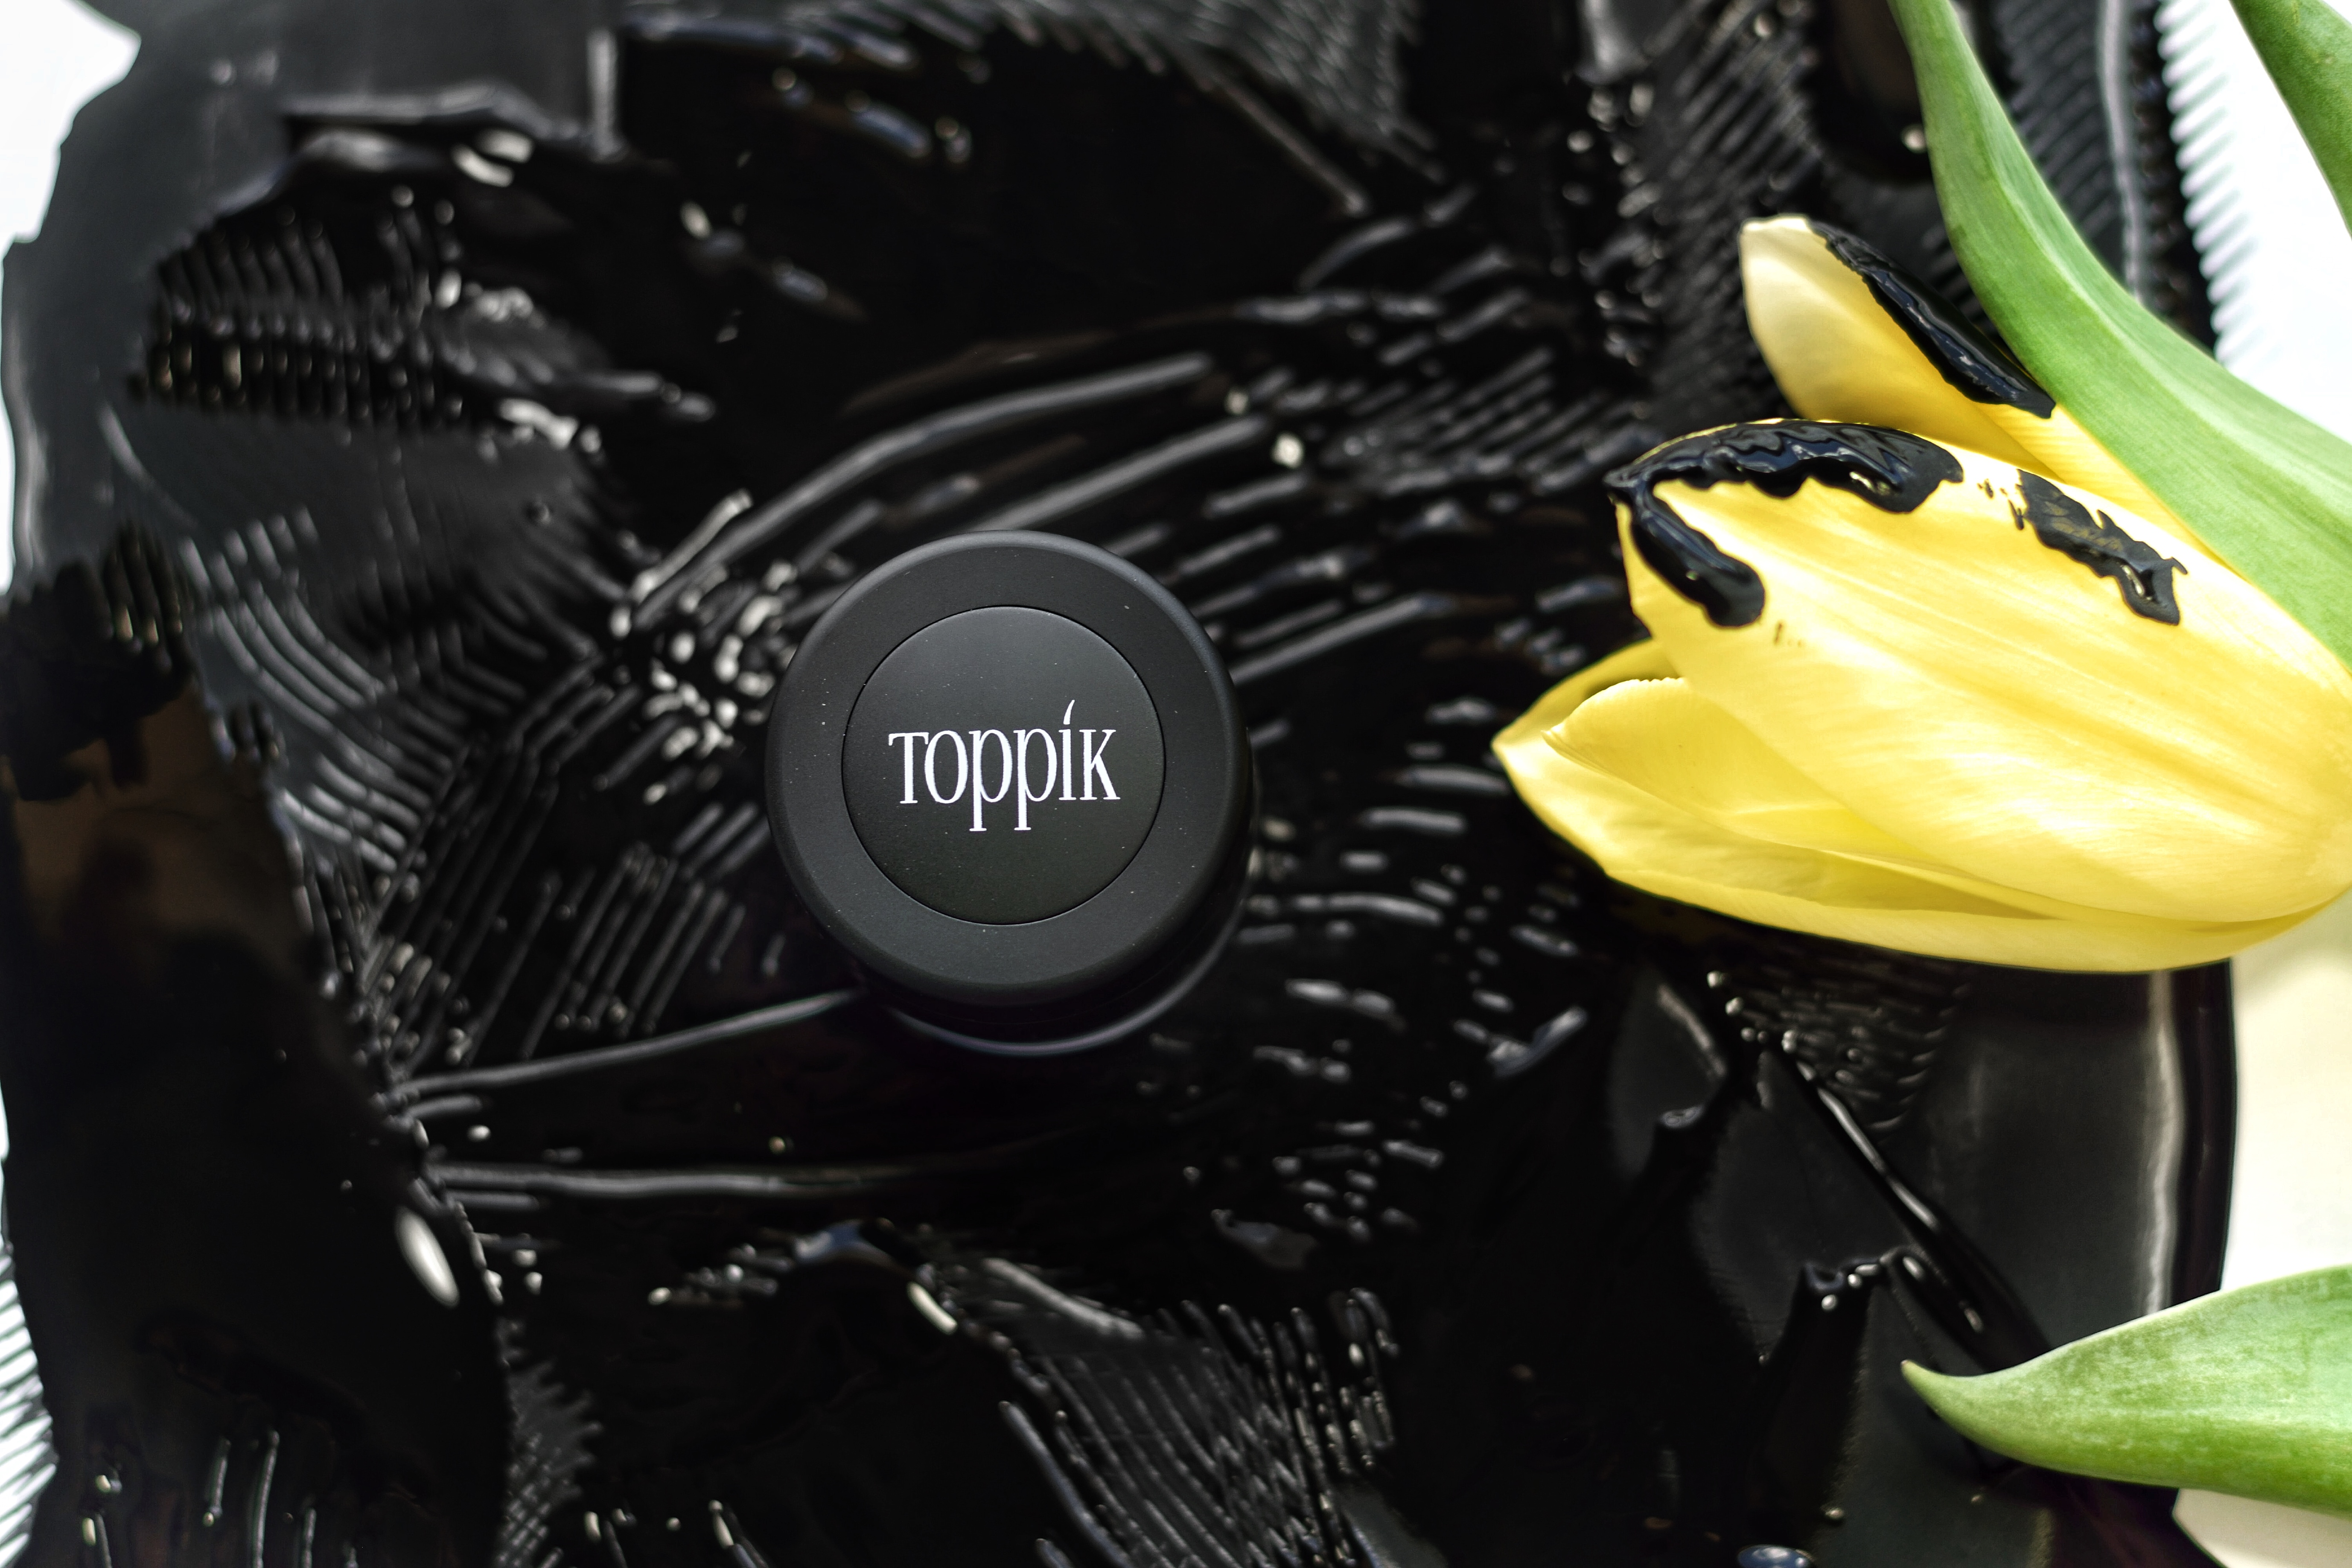 Toppik Canada Brow Building Fibers - Let your brows talk